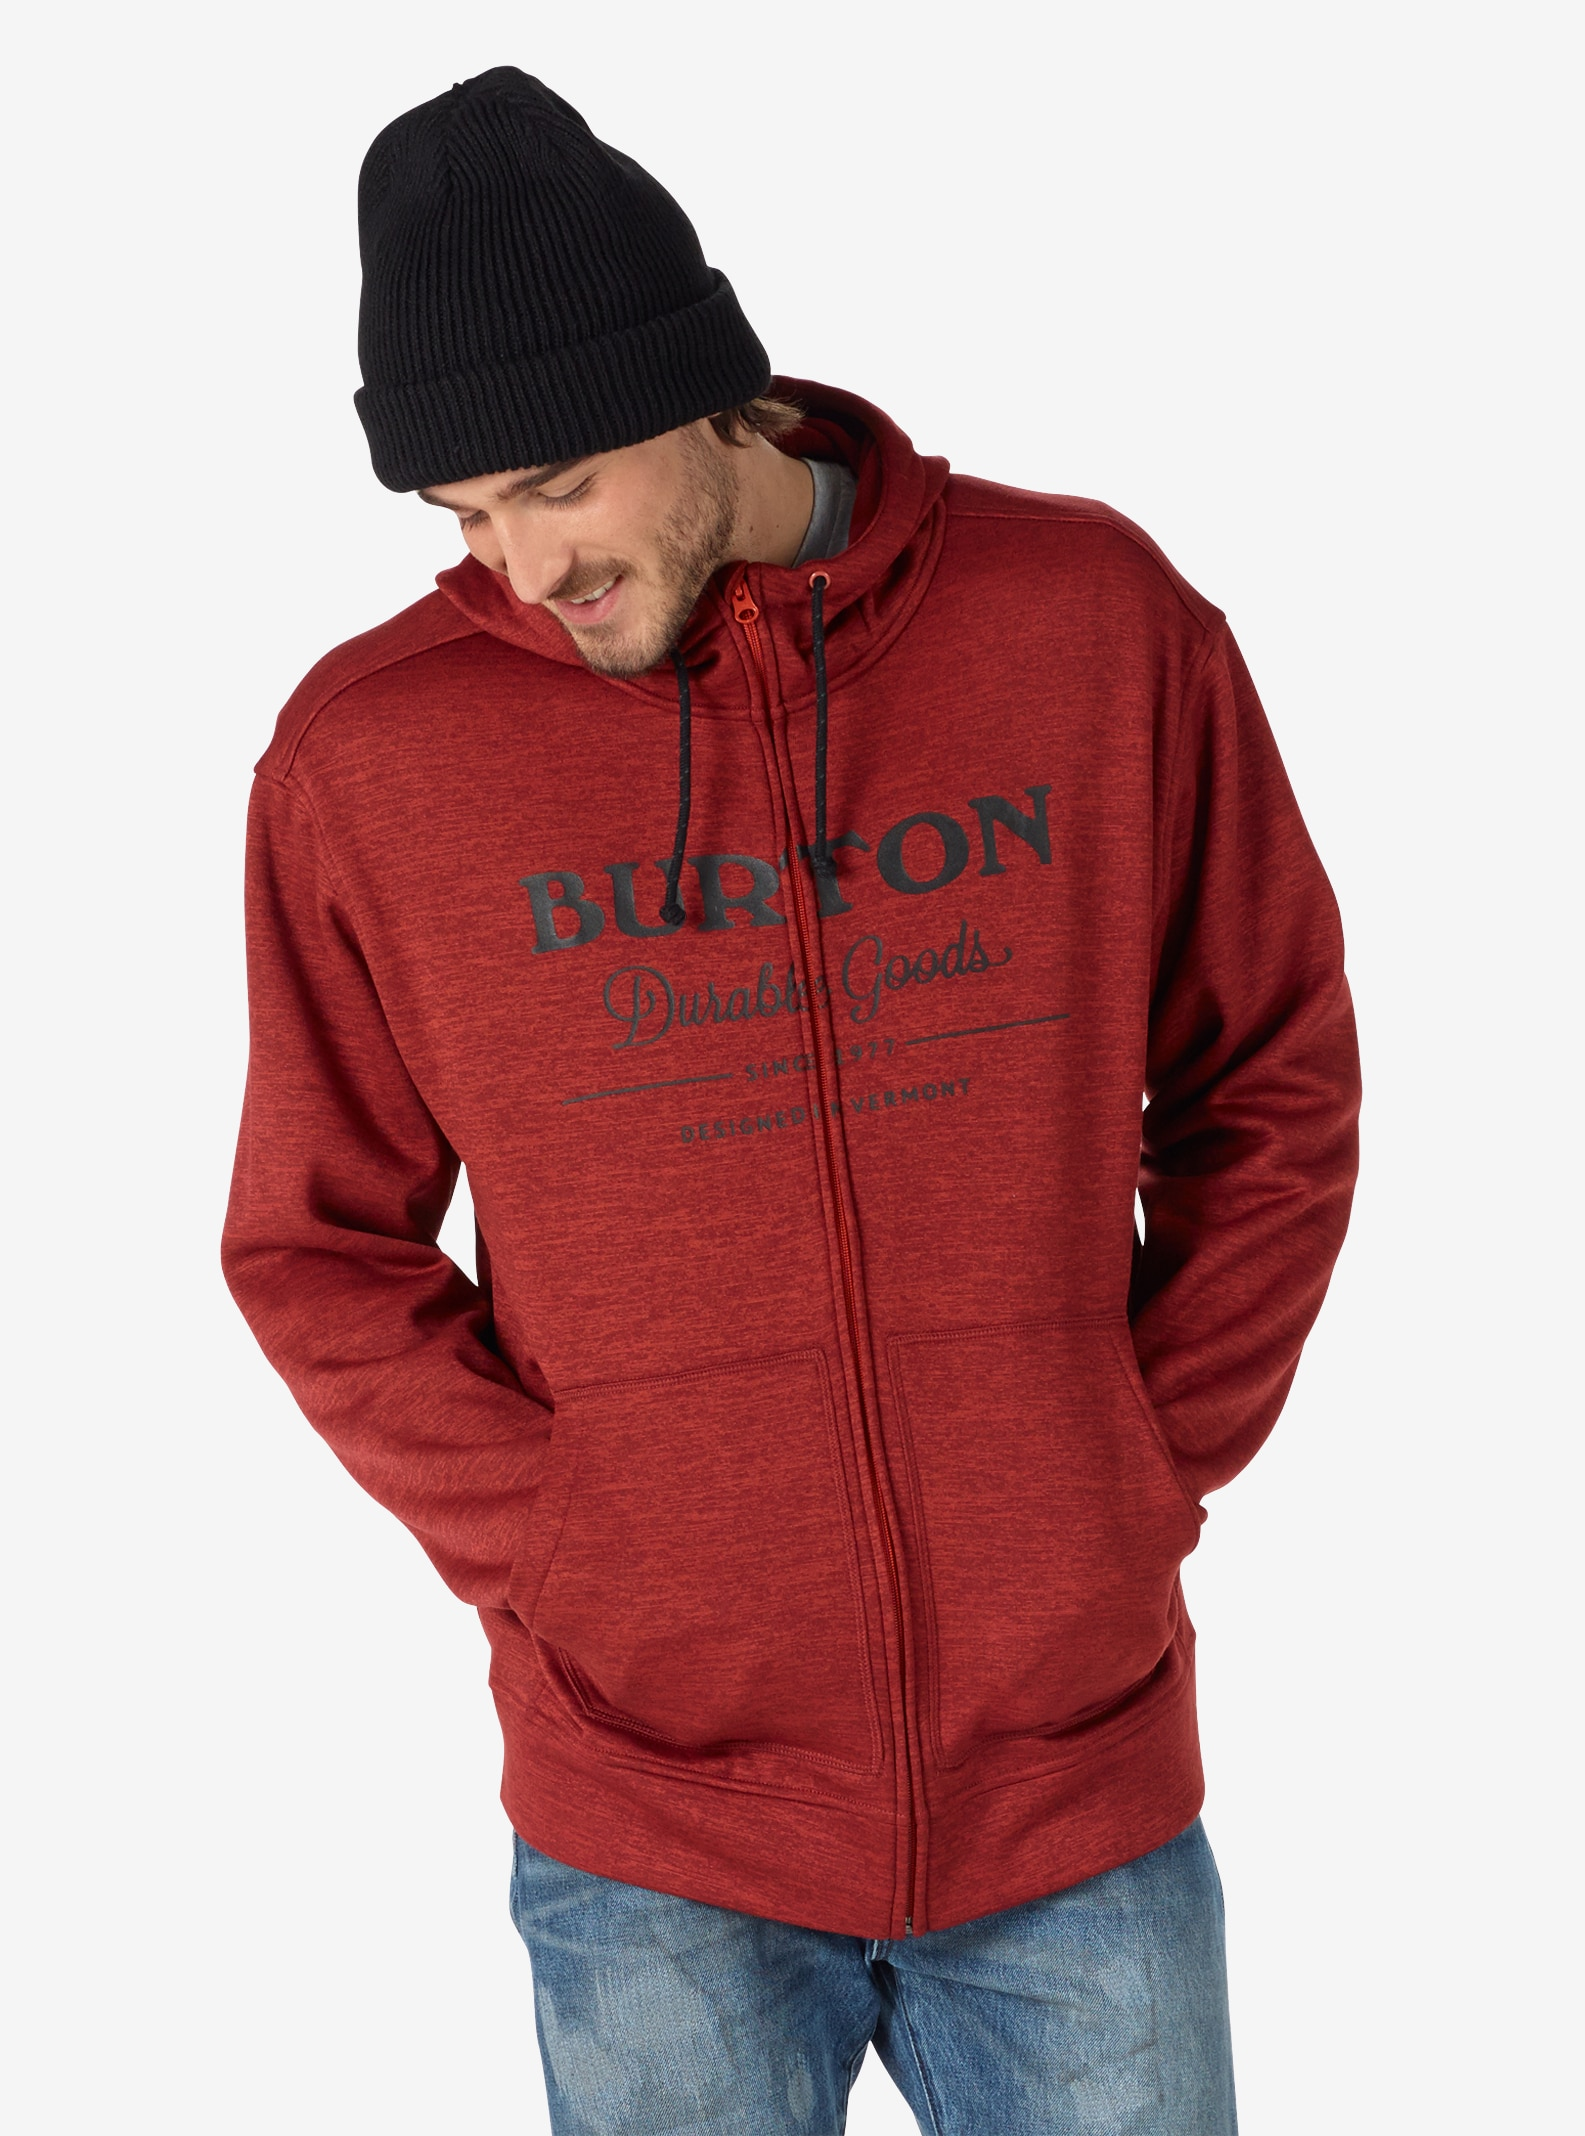 Men's Burton Oak Full-Zip Hoodie shown in Tandori Heather